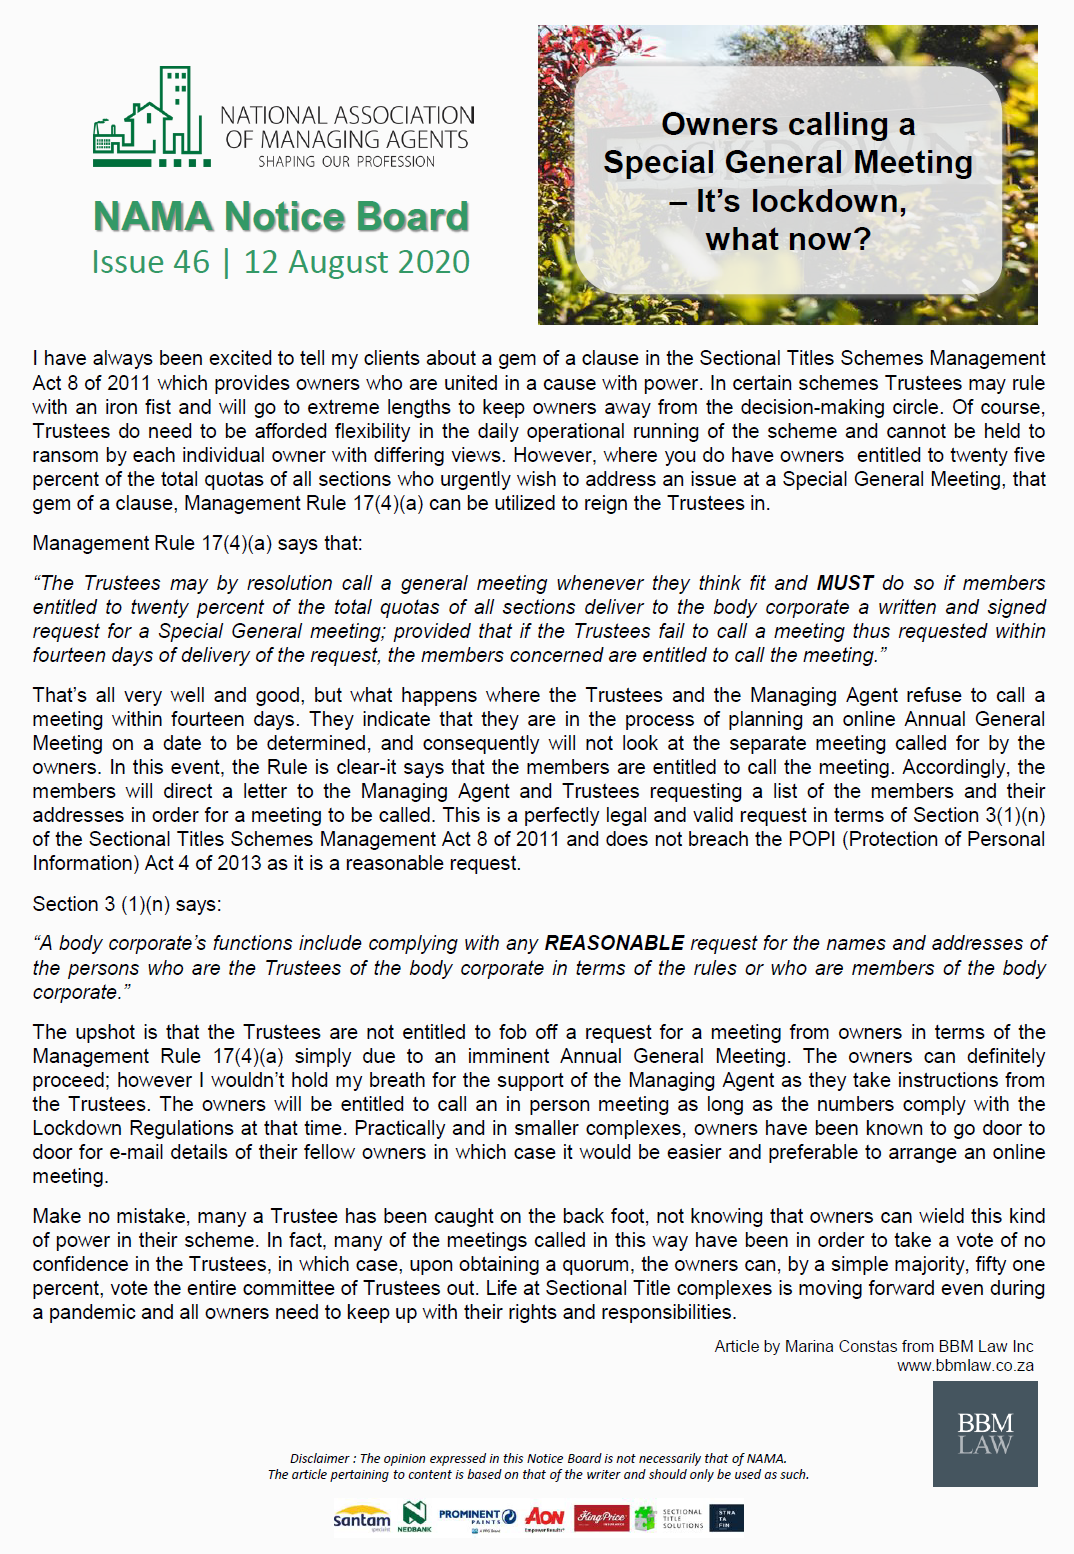 NAMA Notice Board | Issue 46 | 12 August 2020 | Special General Meeting during Lockdown-12/08/20